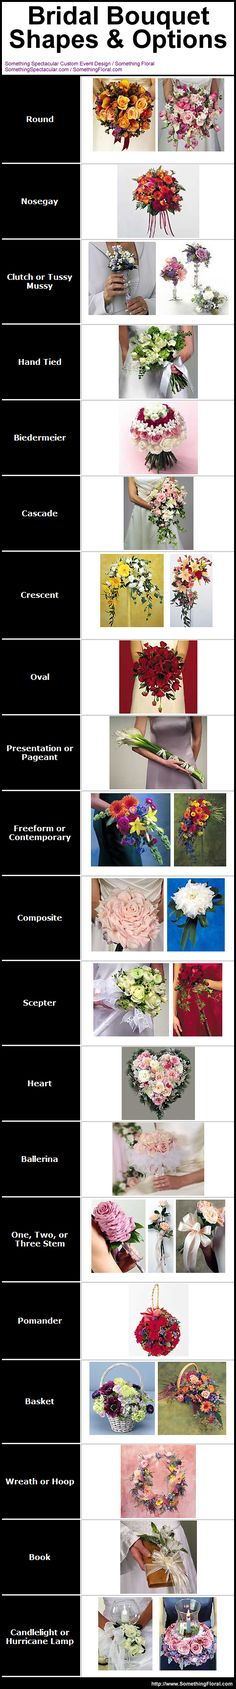 A pictorial list of bridal bouquet and bridesmaid bouquet shapes and options. #wedding #flowers #bouquets #shapes #types